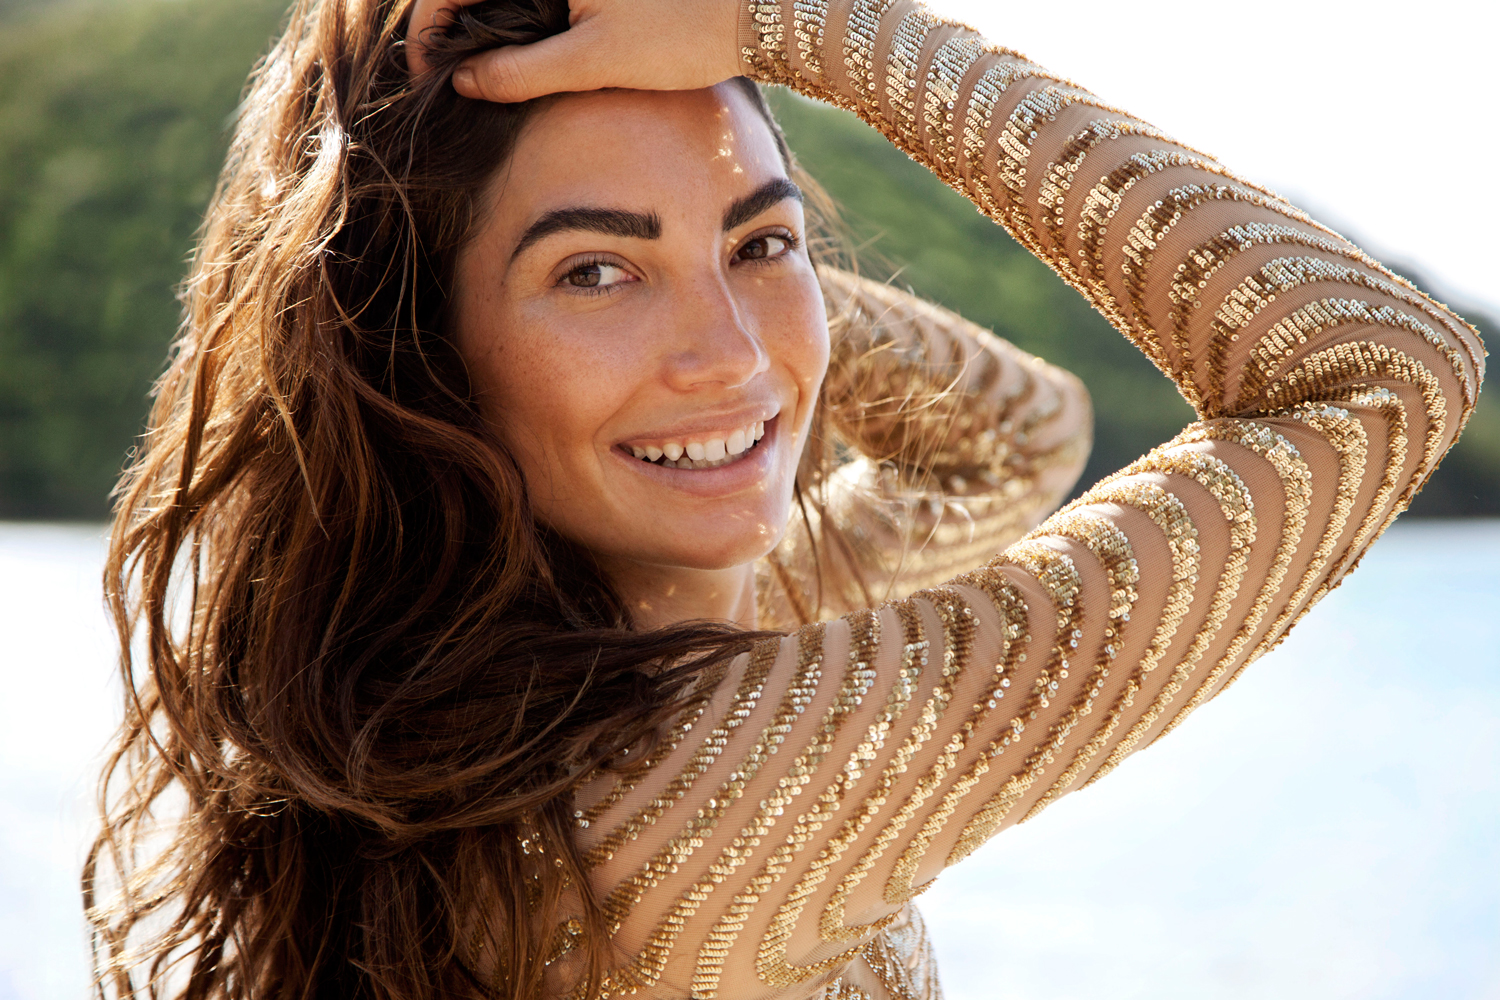 Top Modeling Lily Aldridge By The Sea - Lily Aldridge Net Worth, Pics, Wallpapers, Career and Biography